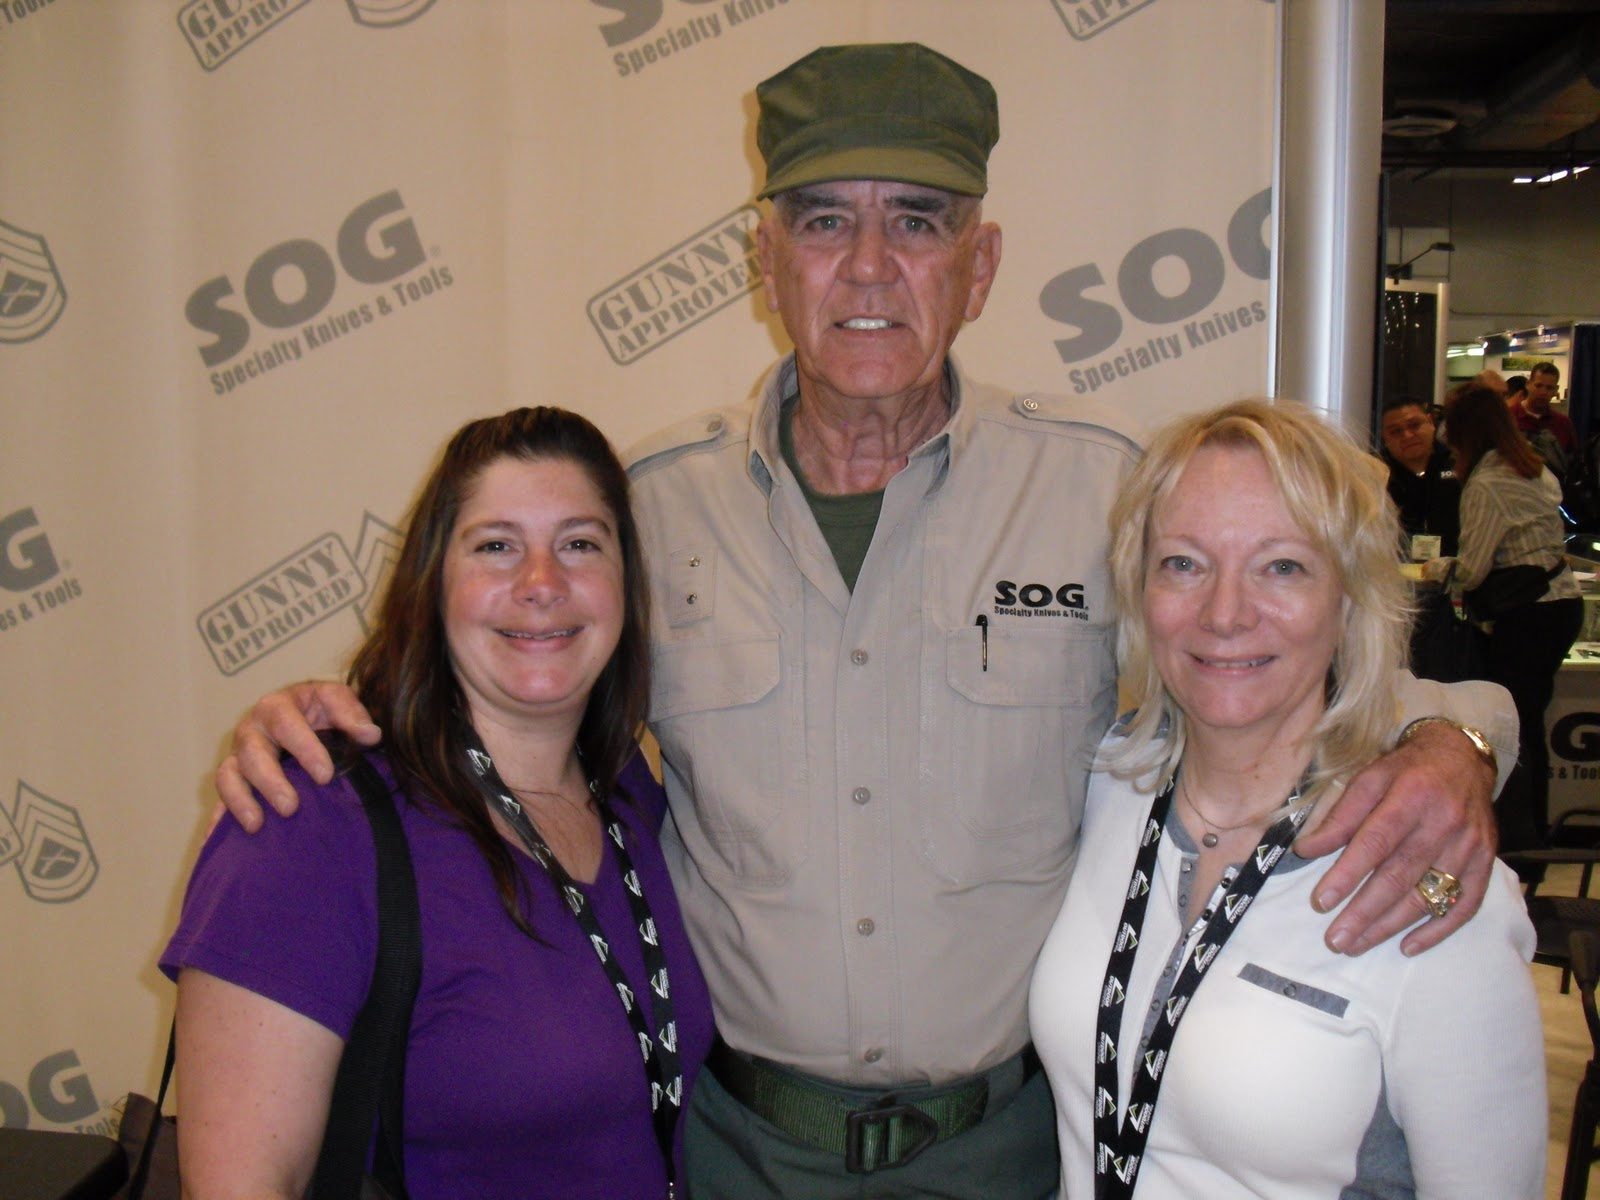 R Lee Ermey Wife Nila R Lee Ermey Wife | www...